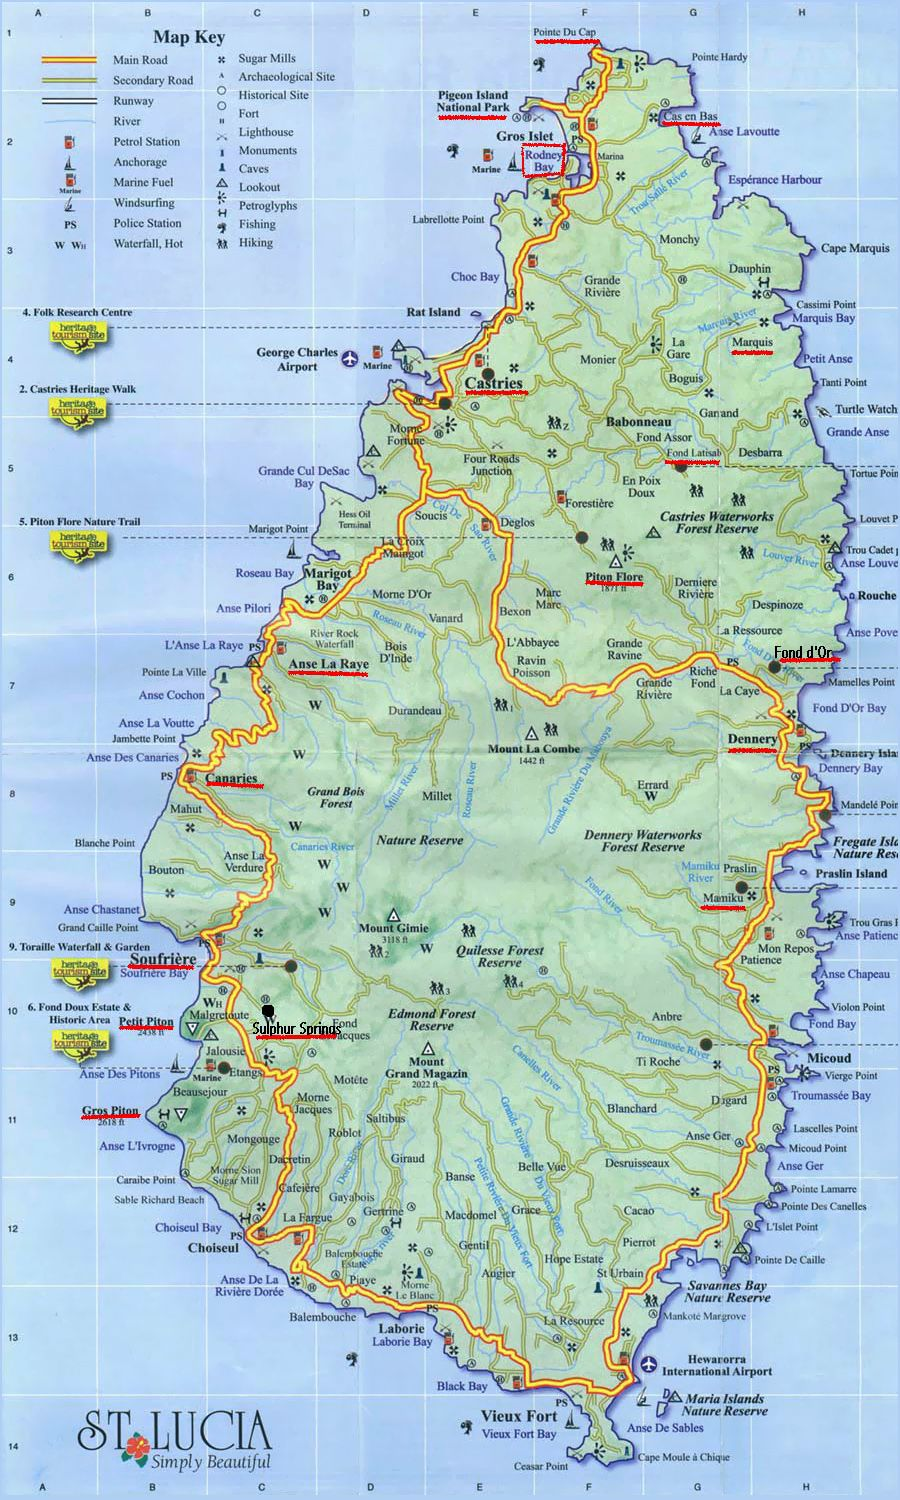 Saint Lucia Map Large detailed road map of Saint Lucia. Saint Lucia large detailed